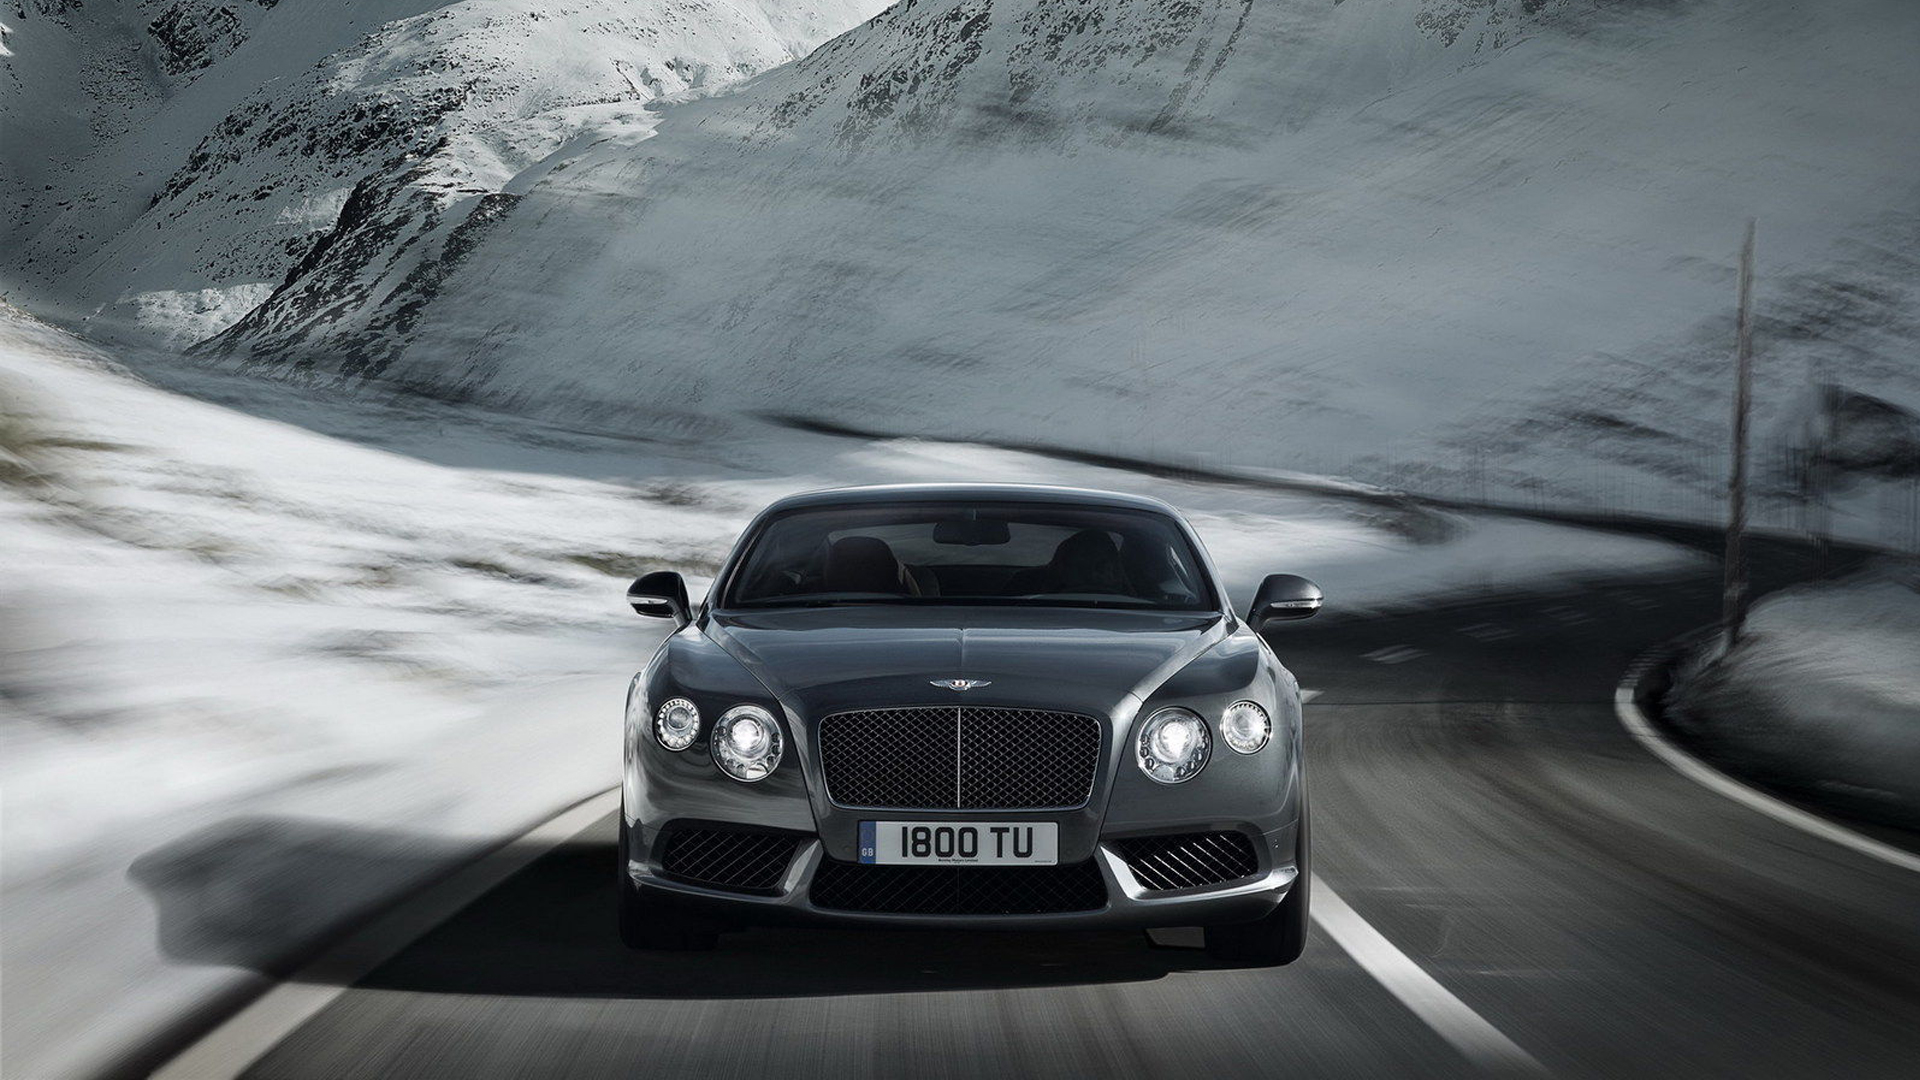 Bentley-Continental-GT-Hybrid-HD-wallpaper-wp422693-1